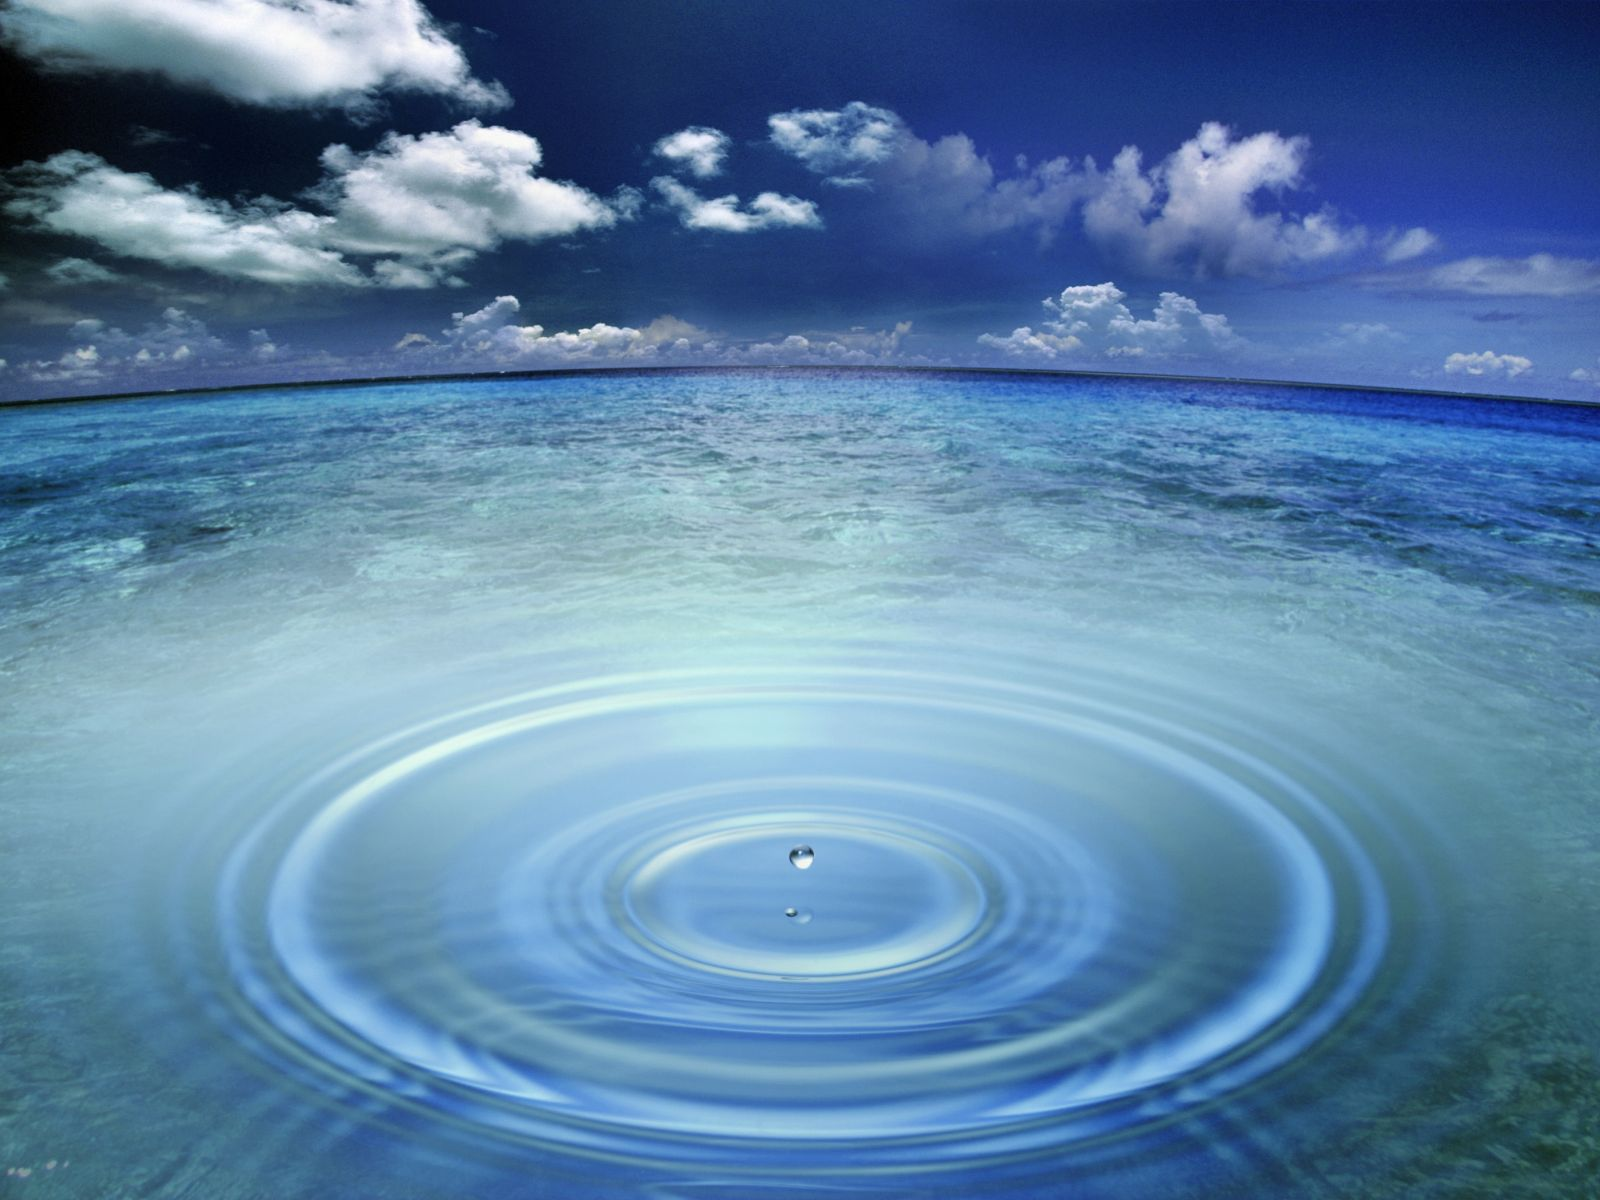 Ocean Water Drop Wallpapers Image